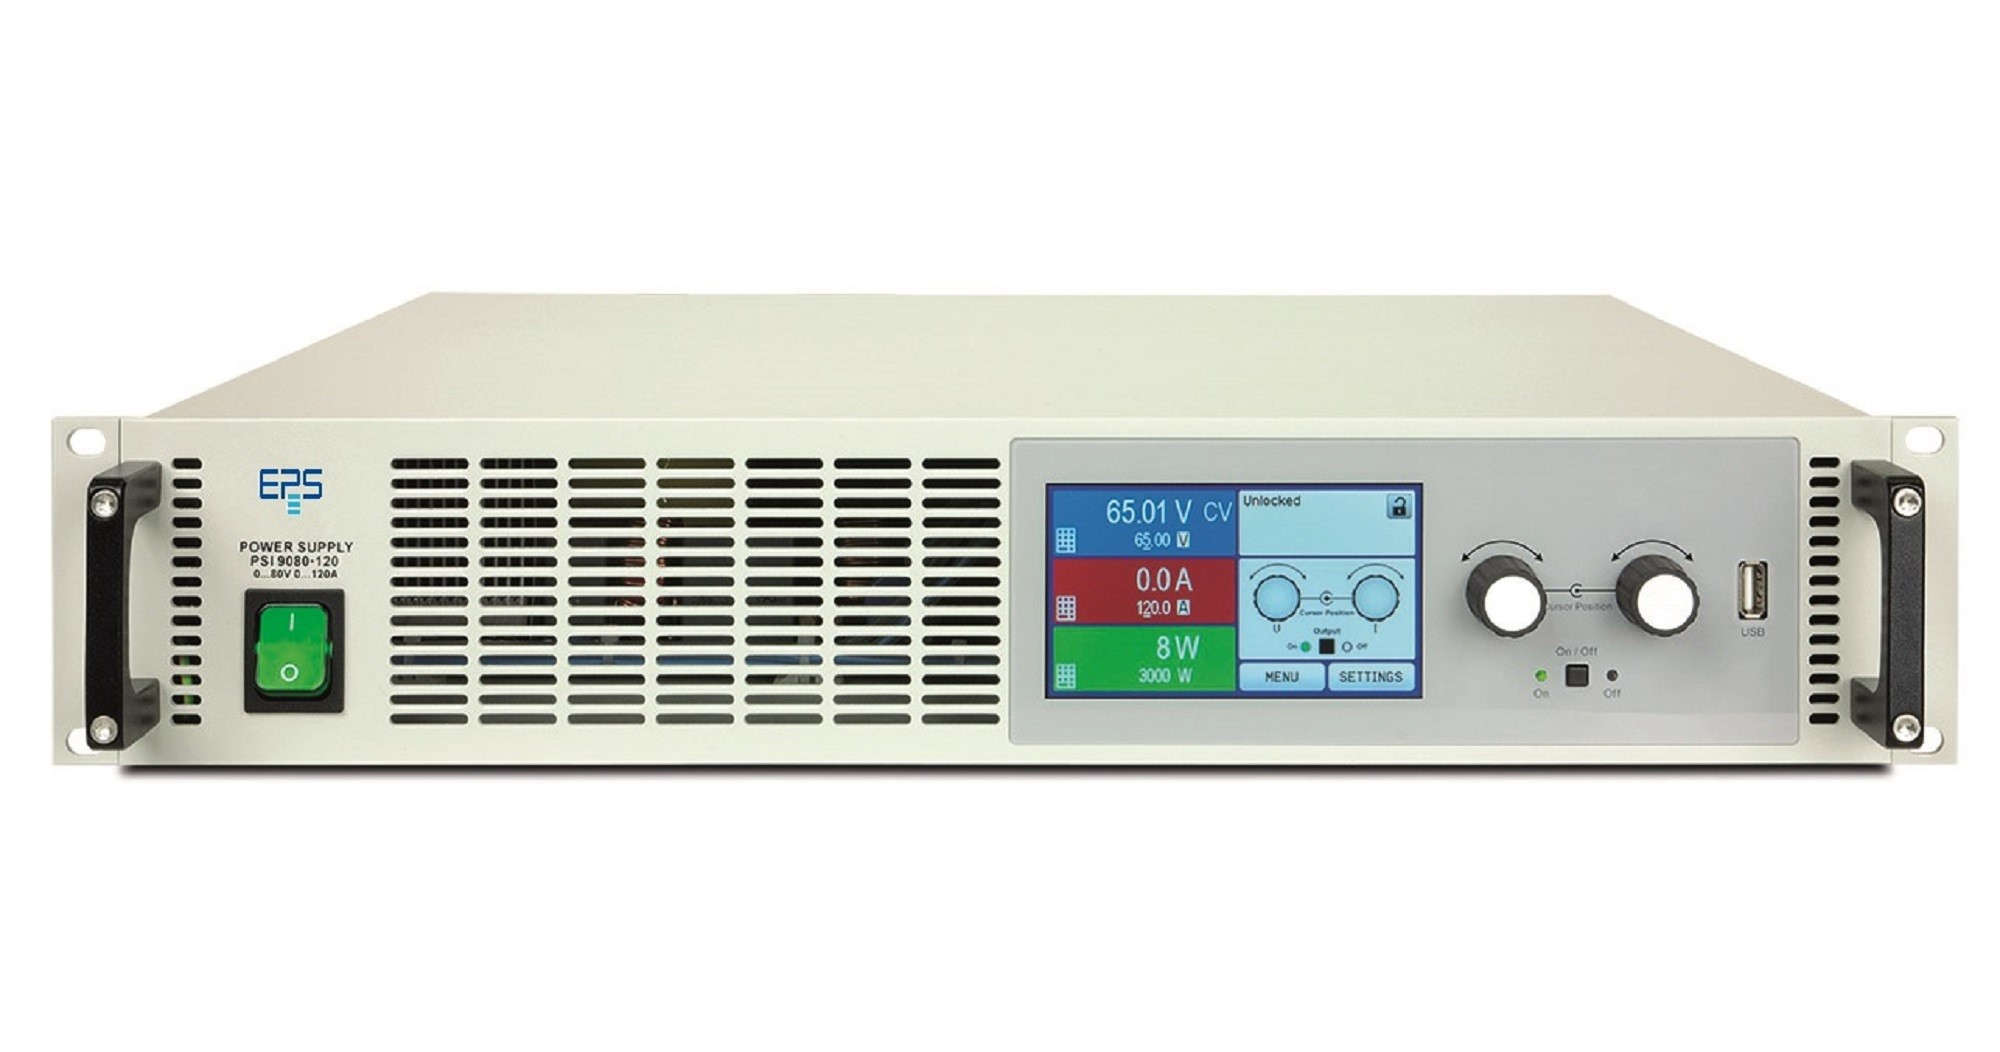 E/PSI 9000-2U Laboratory Power Supply 1000-3000 W